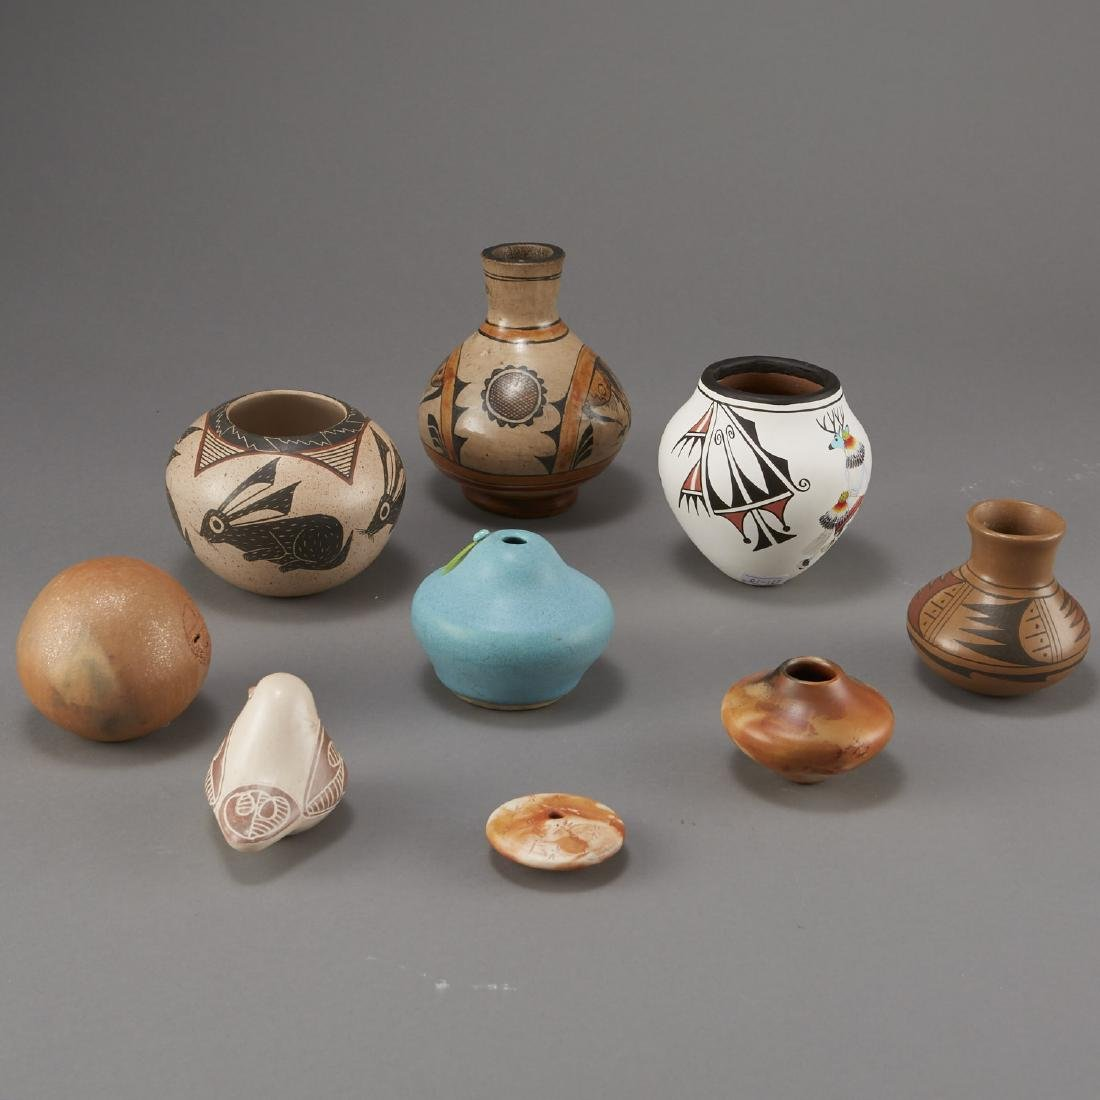 9 Pottery Pieces Pahponee, Lujan-Hauer, Mateos - 2